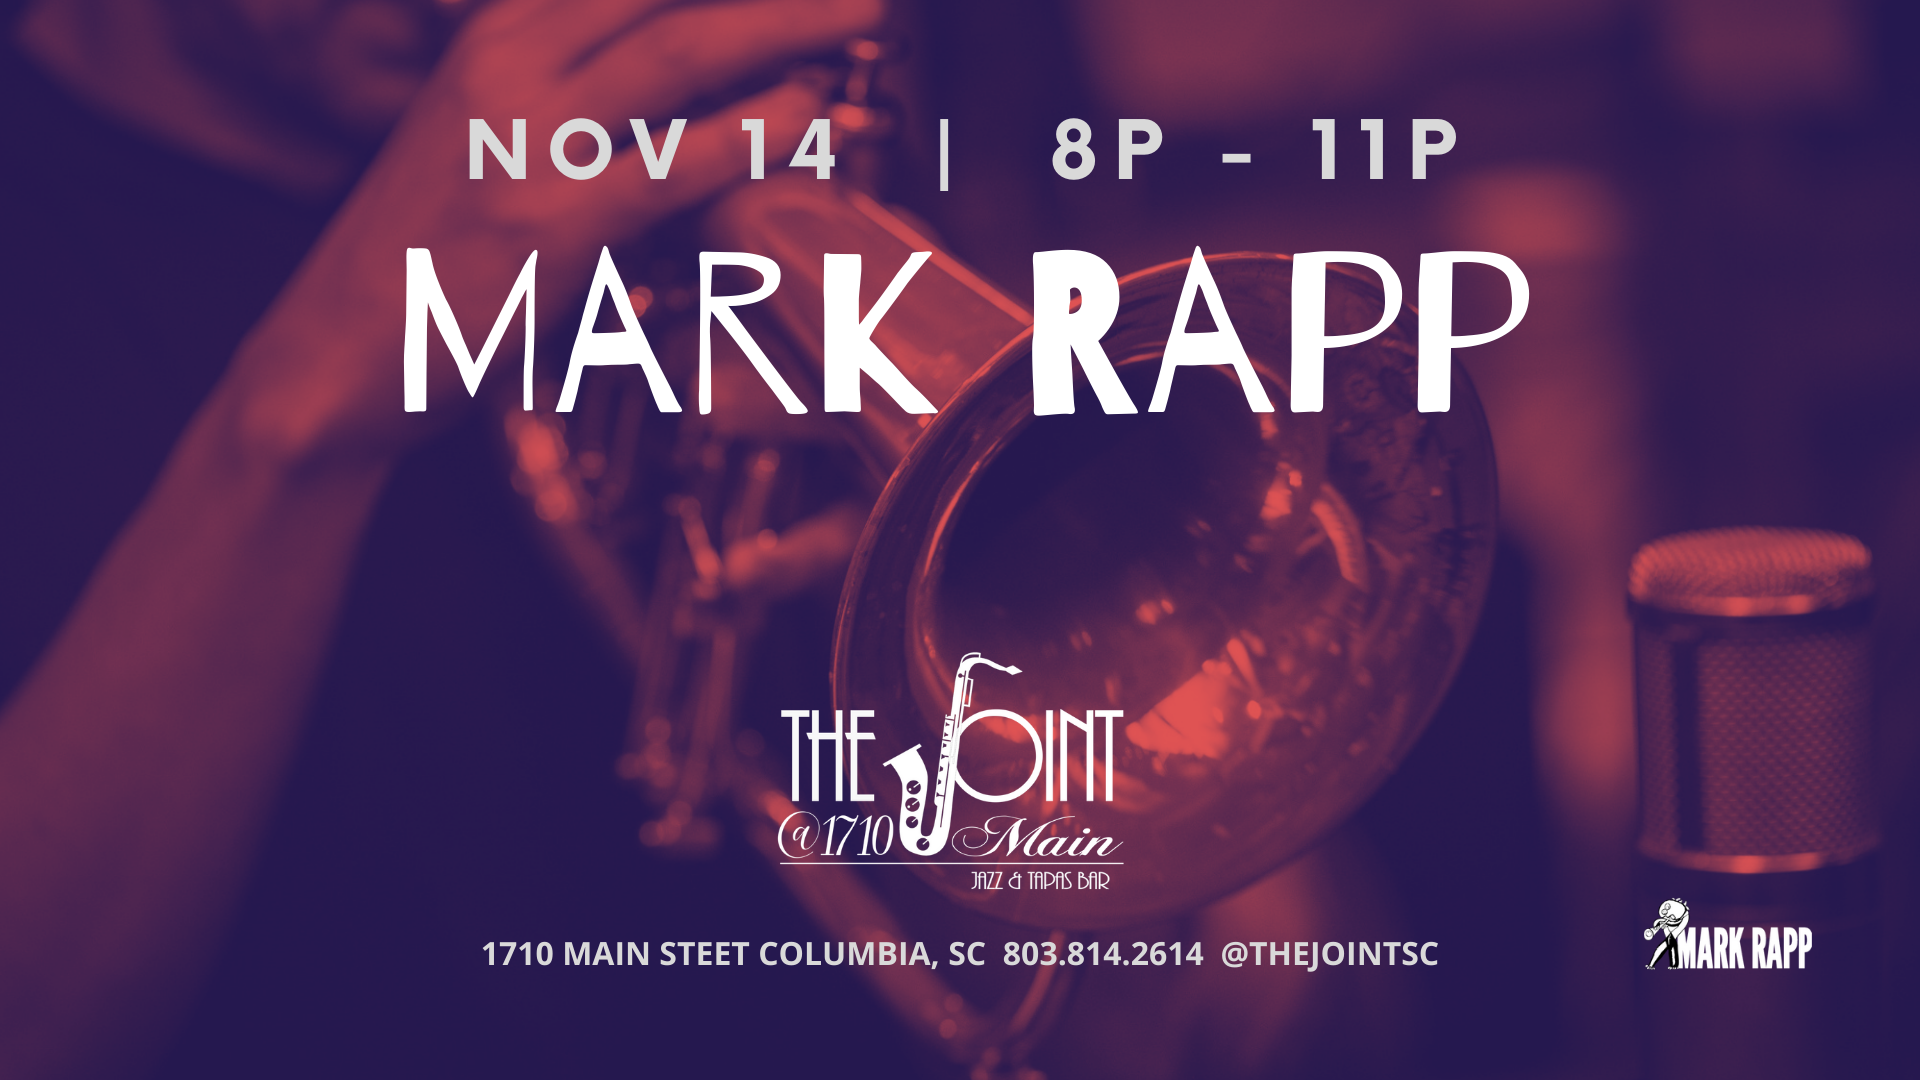 Mark Rapp at The Joint